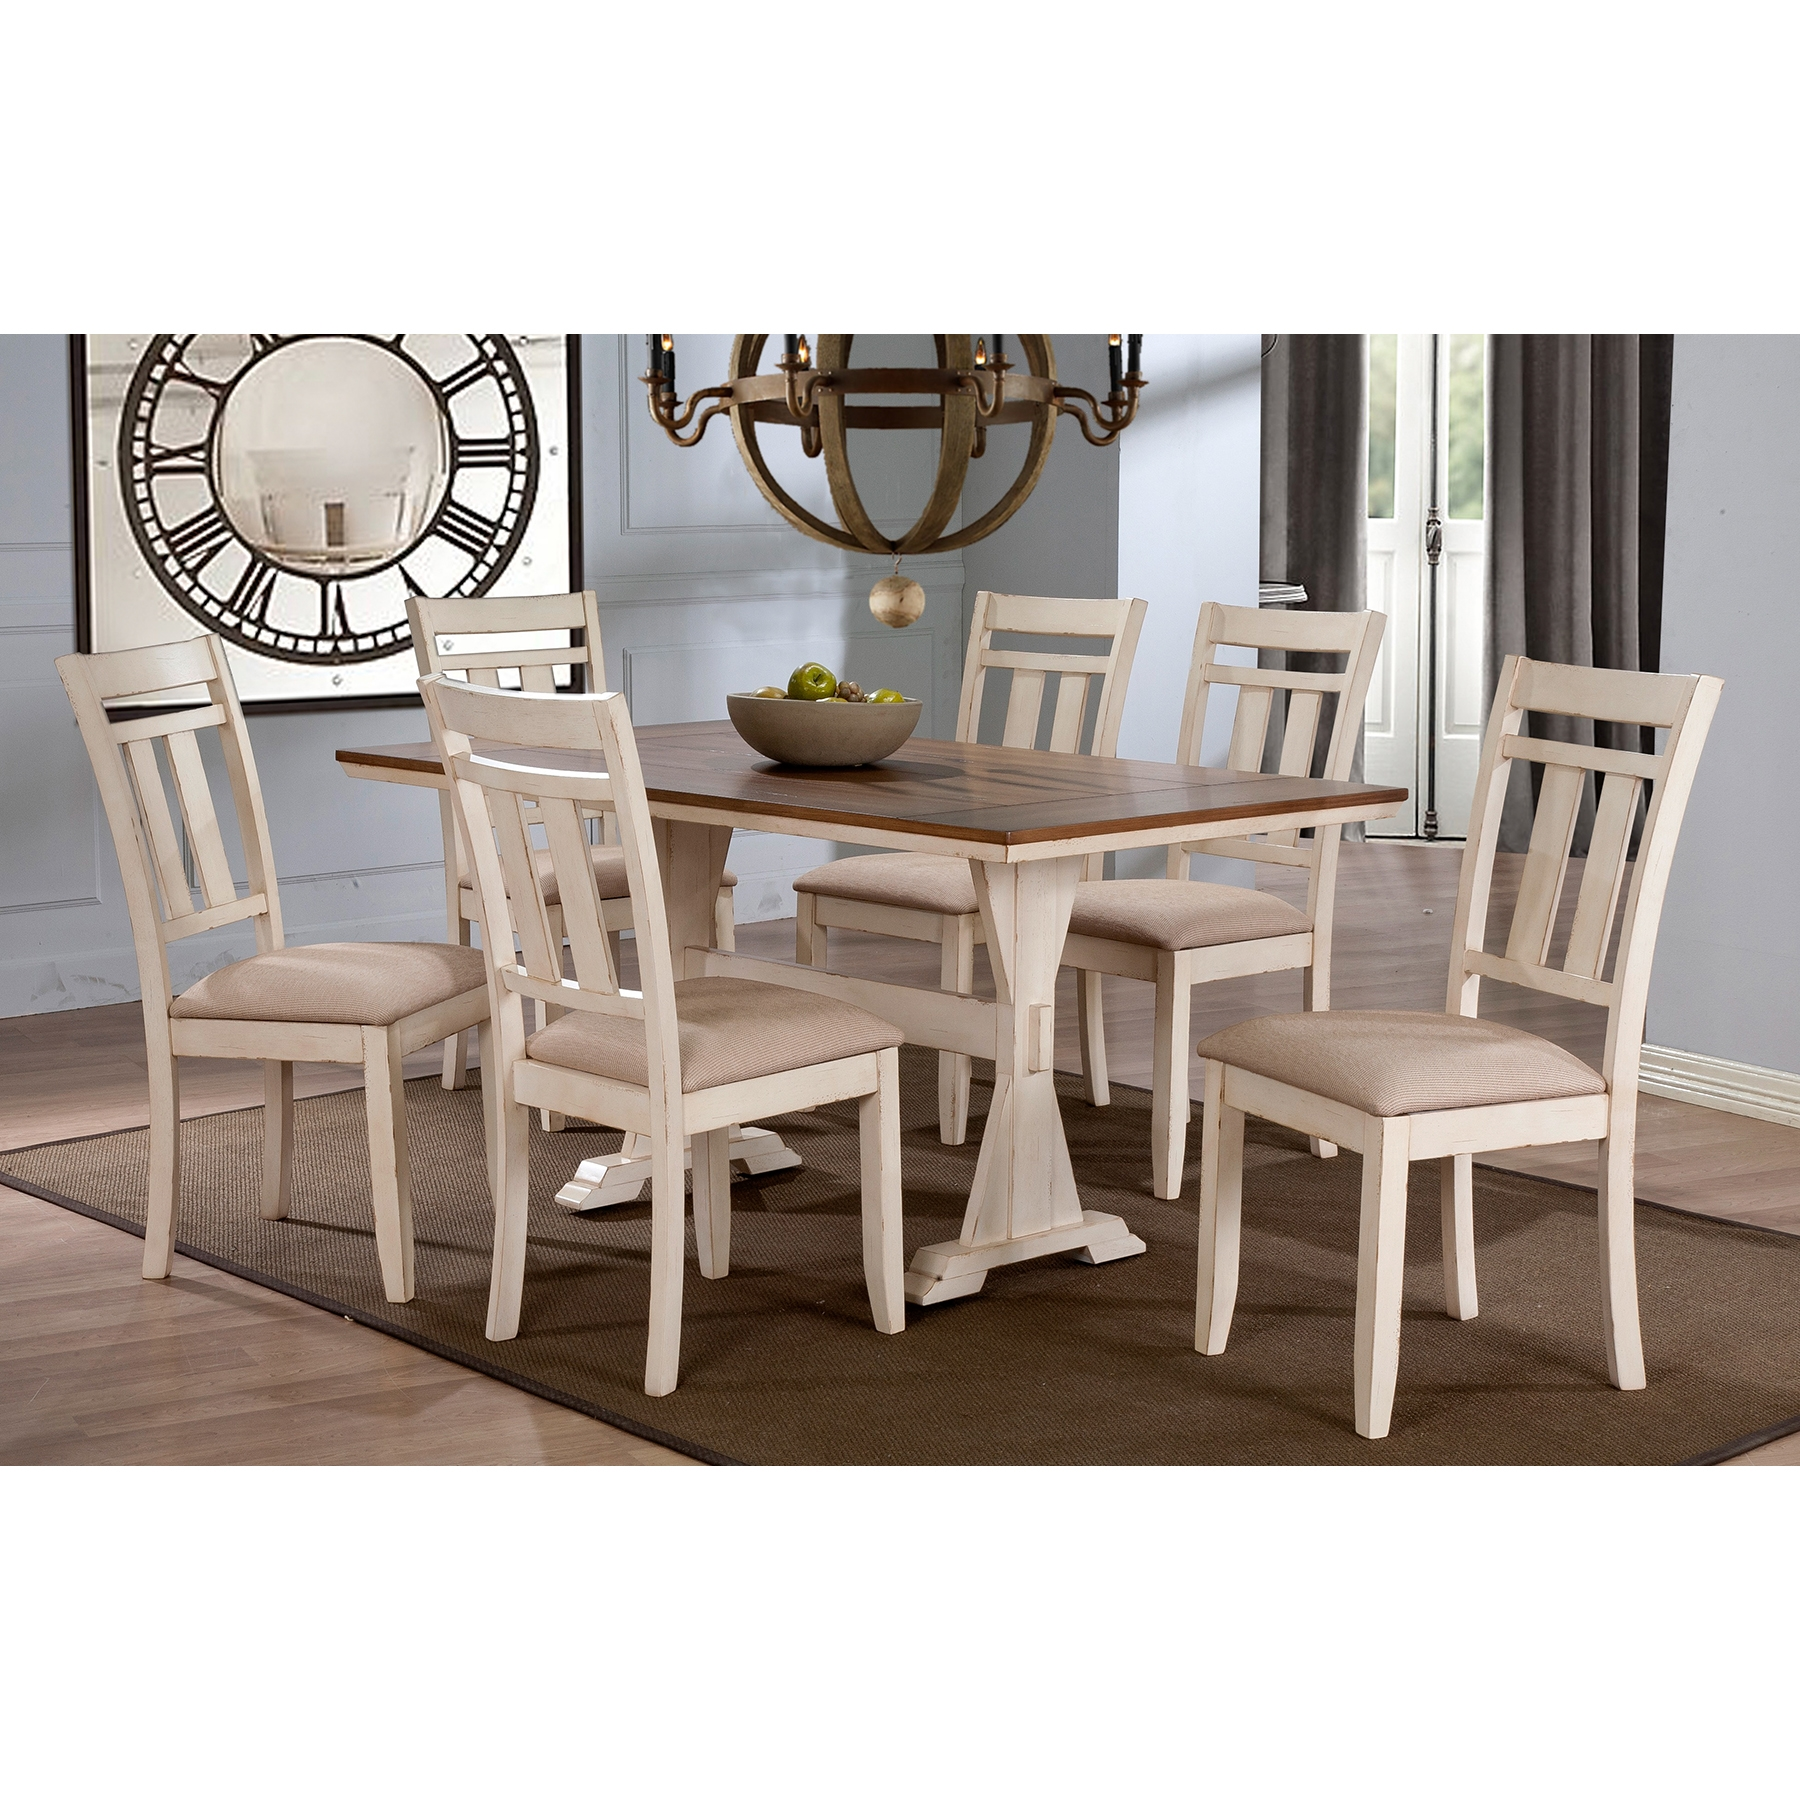 ... Baxton Studio Roseberry Shabby Chic French Country Cottage Antique Oak  Wood And Distressed White 7